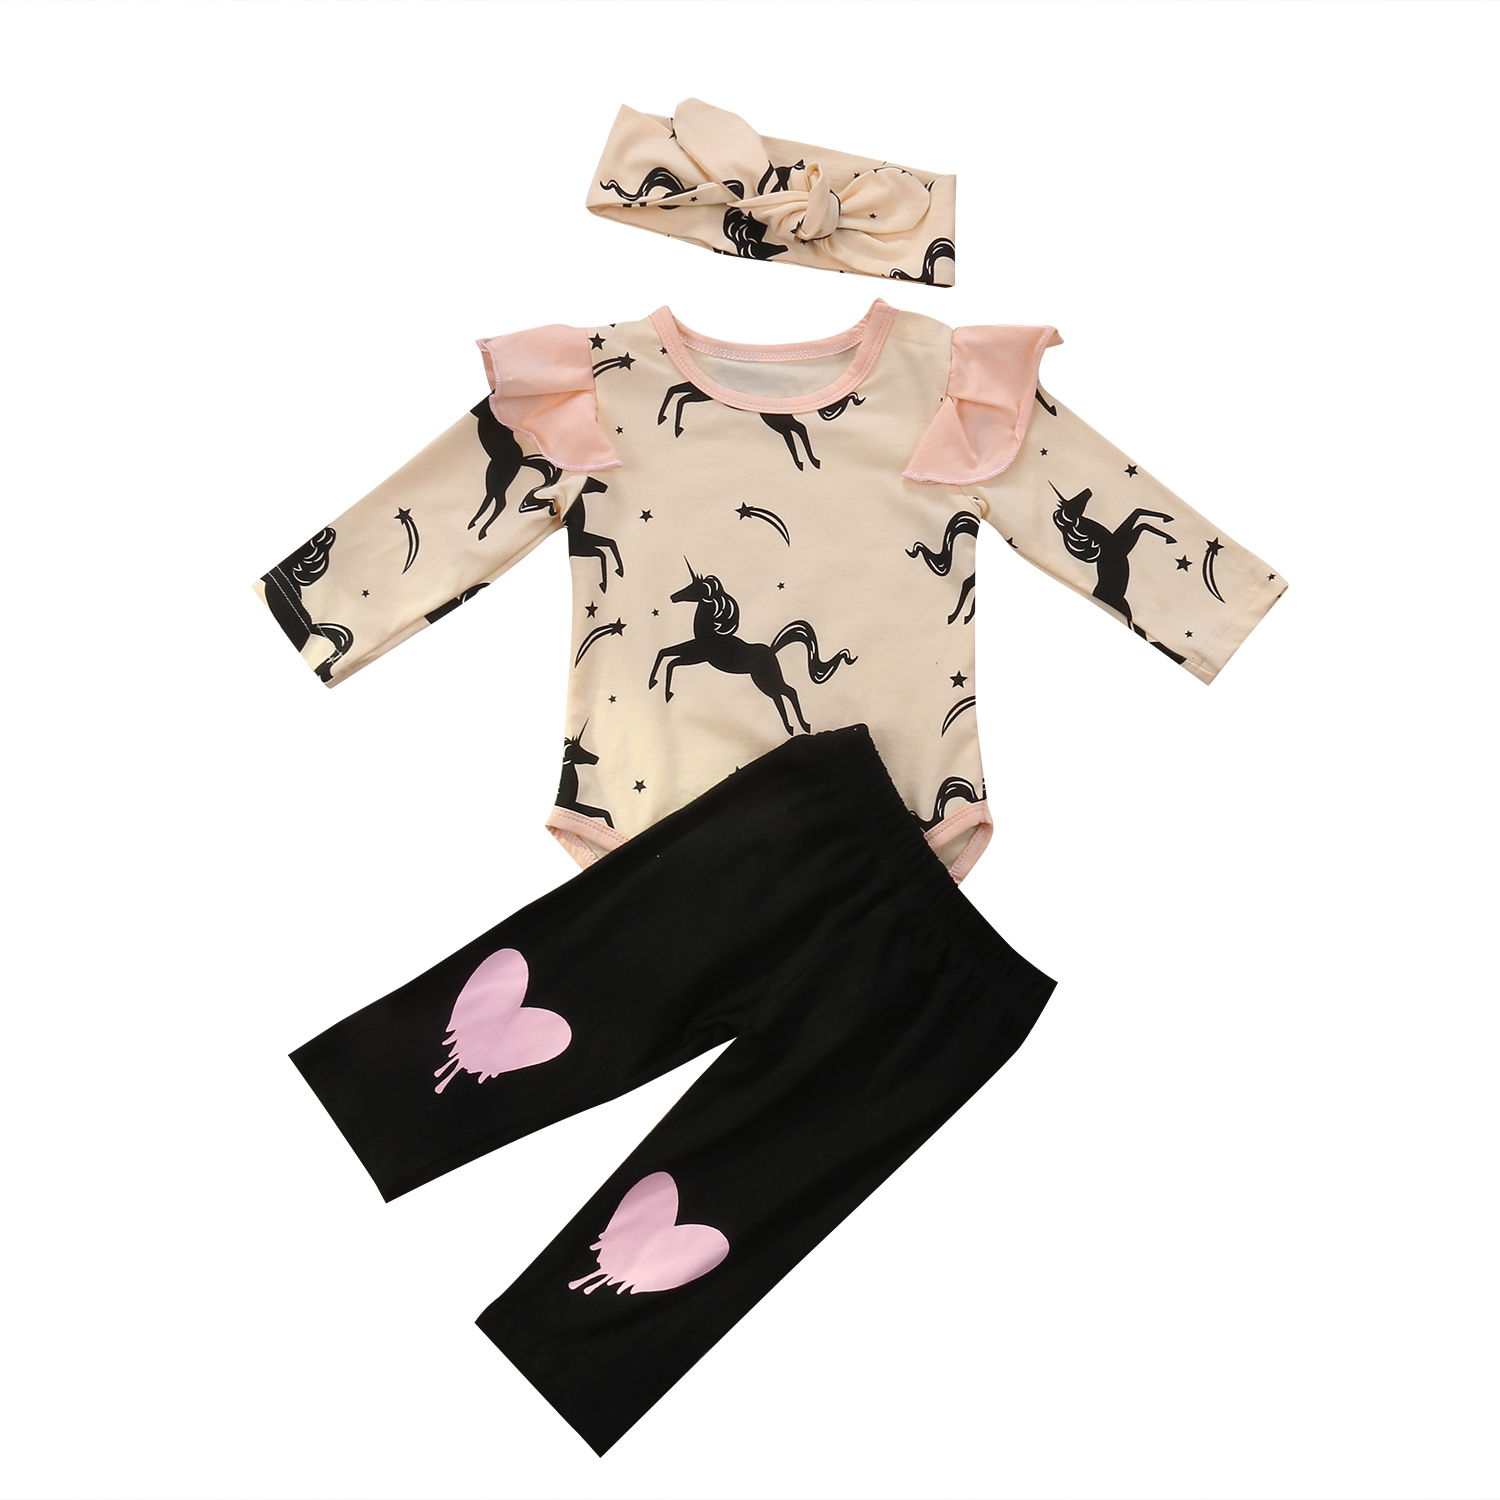 3PCS New Style Newborn Kids Baby Girls Clothes Cotton Long Sleeve Romper Long Pants Outfit Baby Clothing Set 0 to 24M